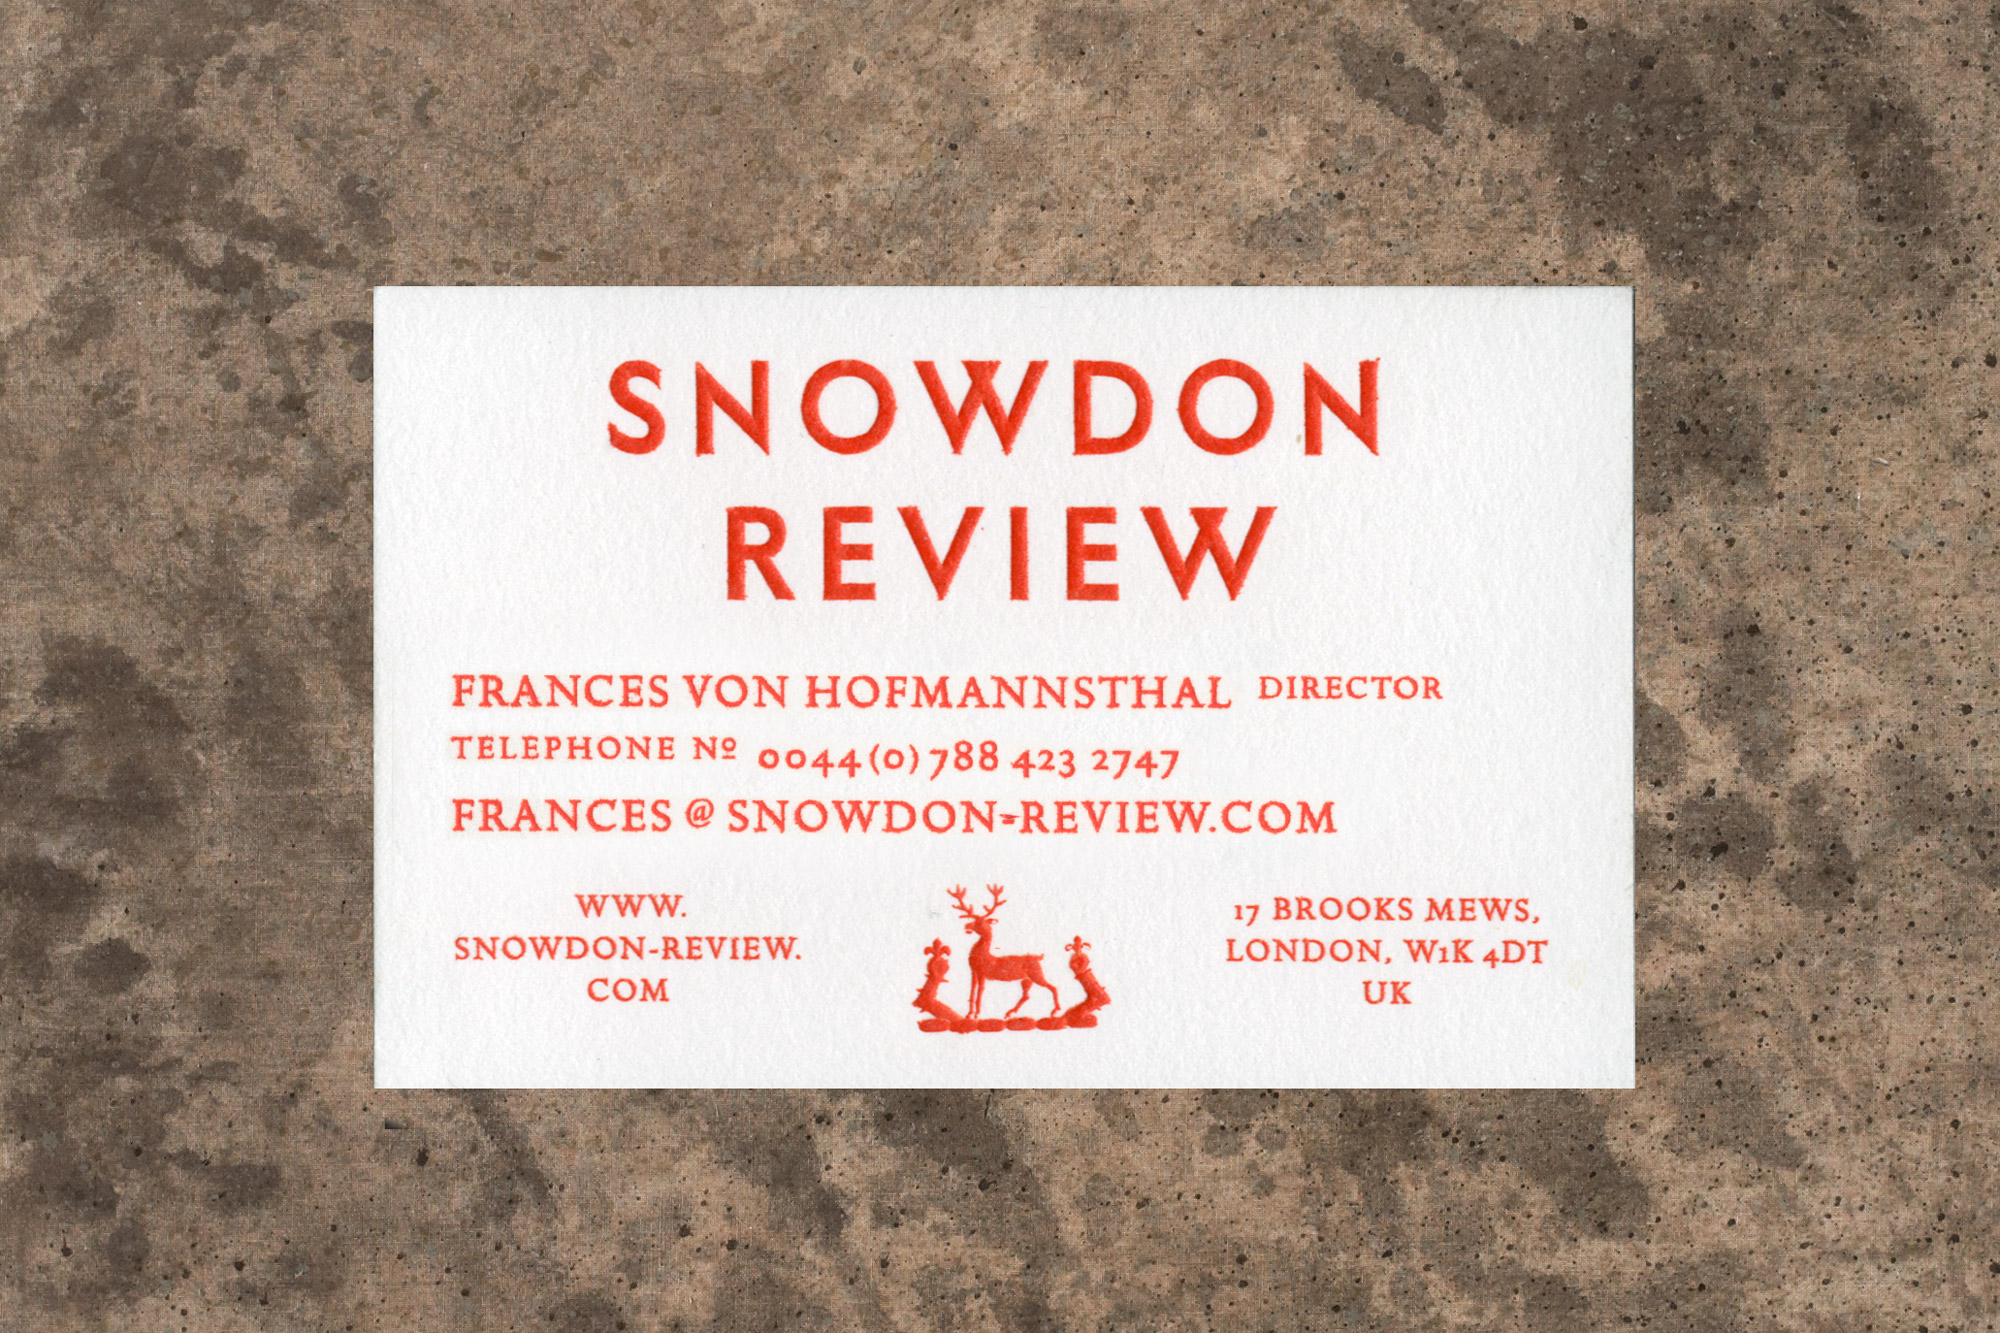 Snowdon Review